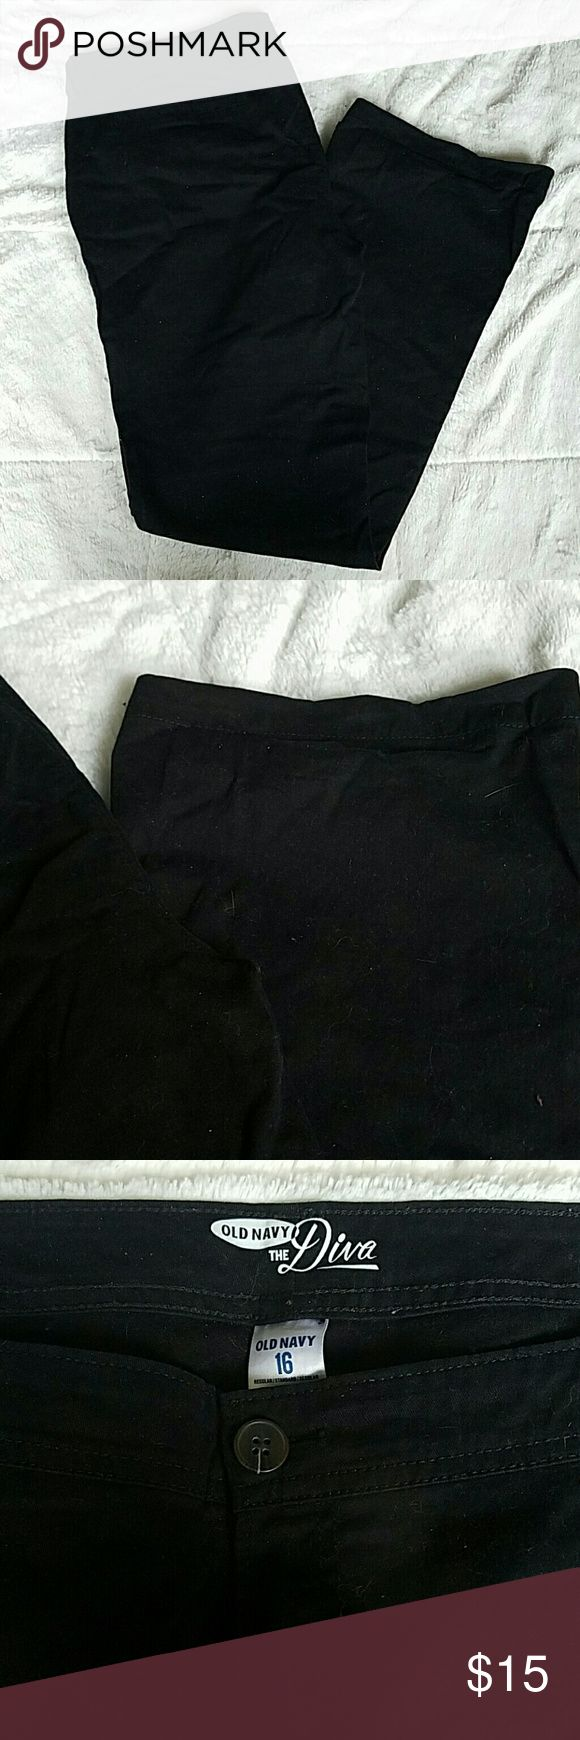 Old Navy Black Khaki Pants Old Navy Bootcut Black Khaki Pants. Only worn a couple times, in excellent condition. Size 16 Old Navy Pants Boot Cut & Flare